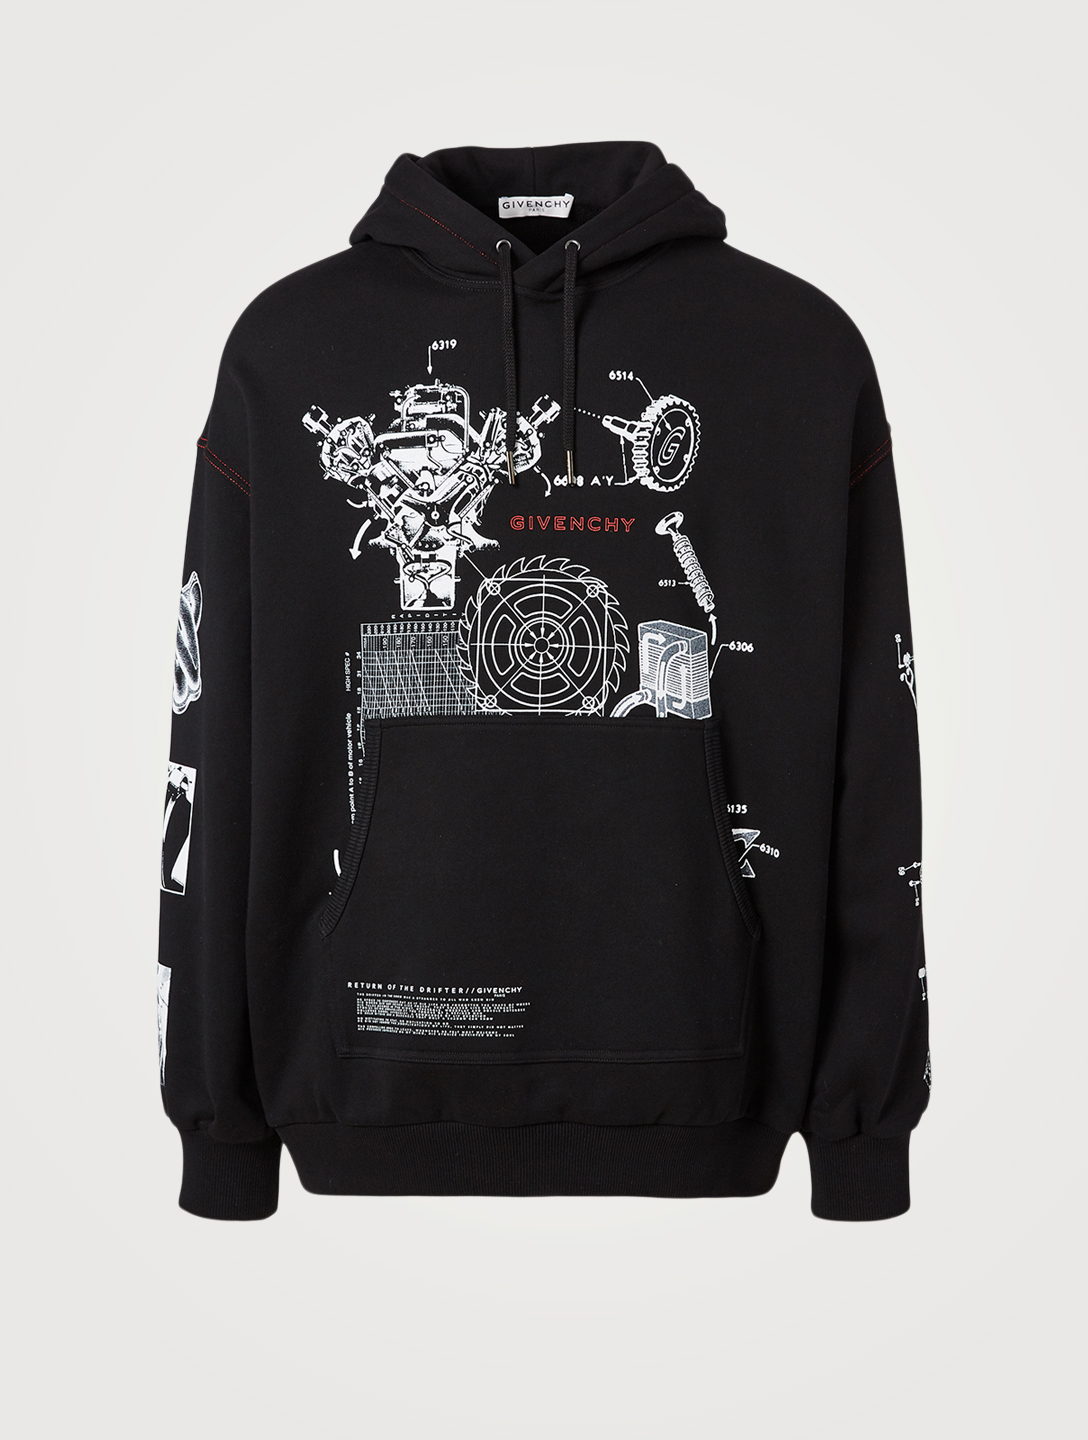 GIVENCHY Oversized Hoodie With Schematics Logo Men's Black